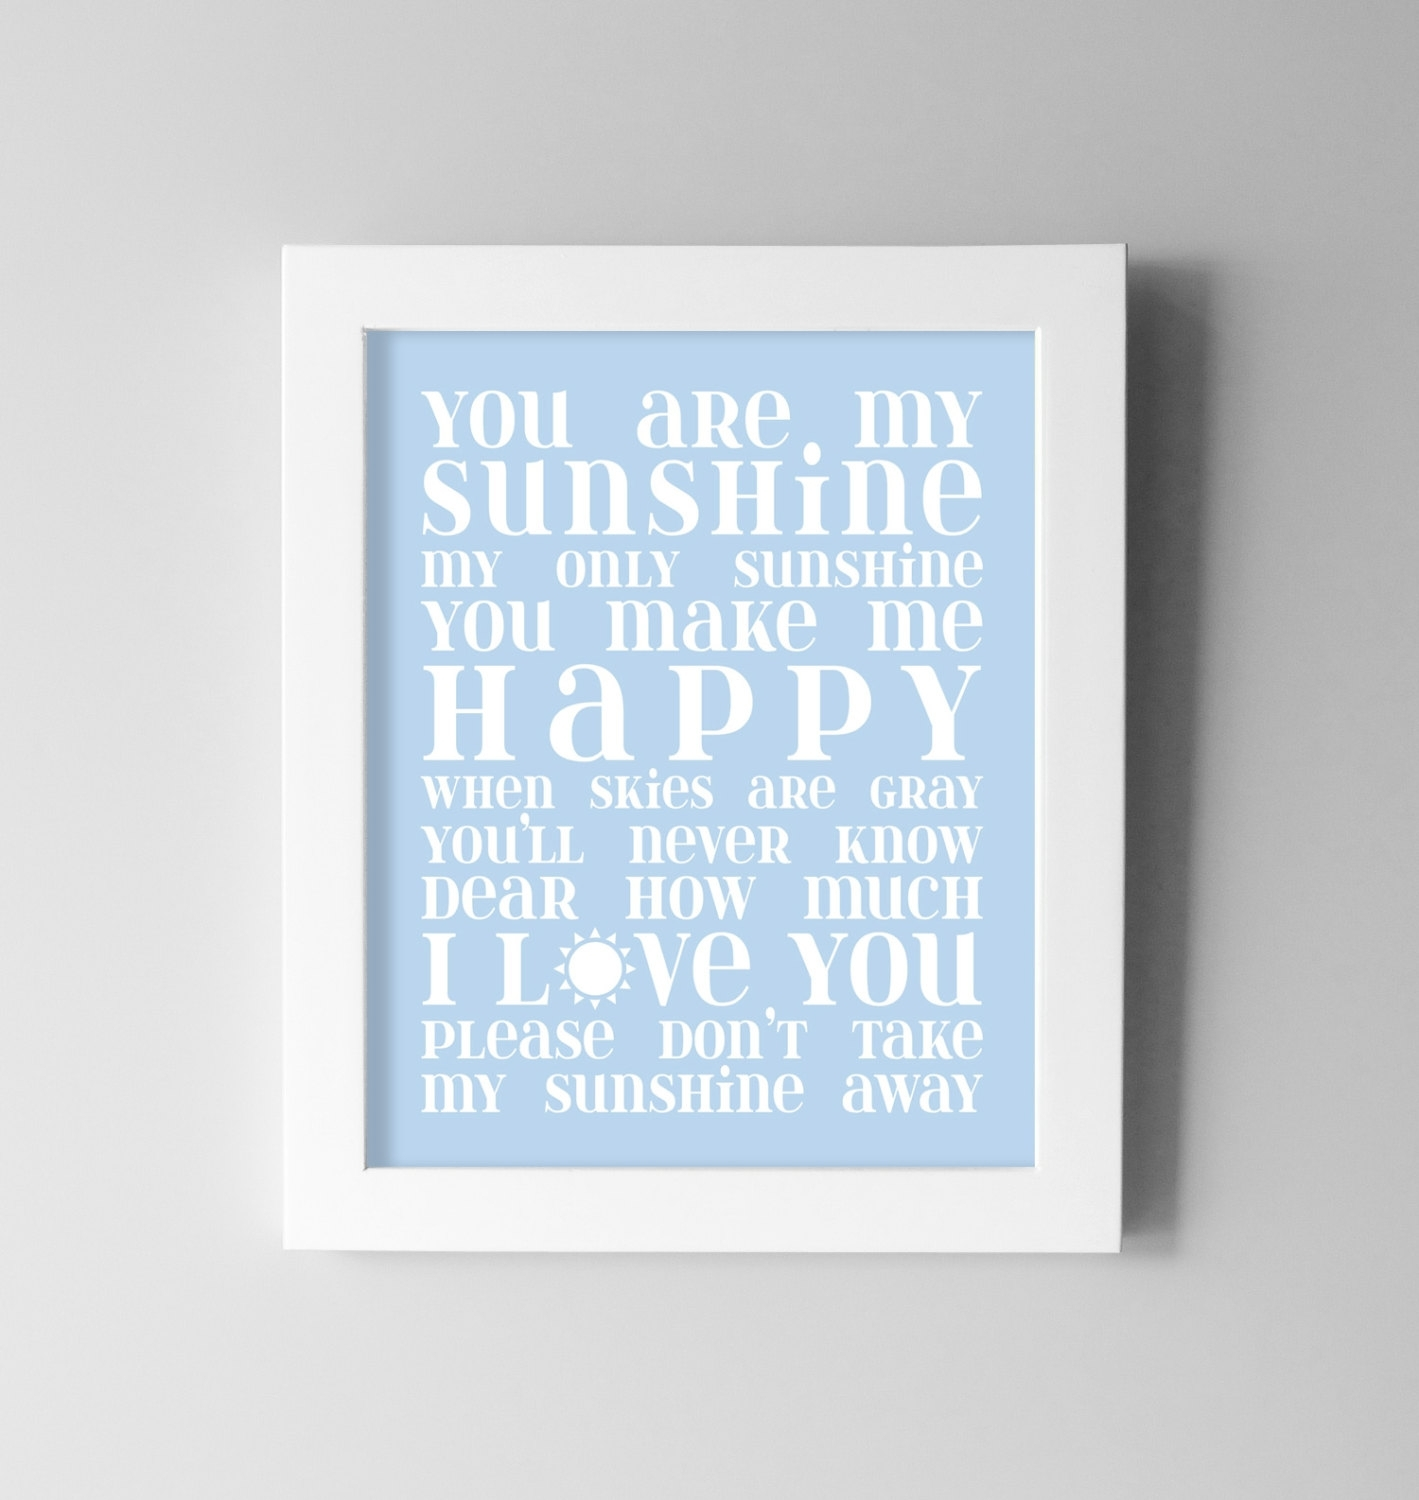 Baby Boy Nursery Wall Art You Nice You Are My Sunshine Wall Decor In Best And Newest You Are My Sunshine Wall Art (View 11 of 15)